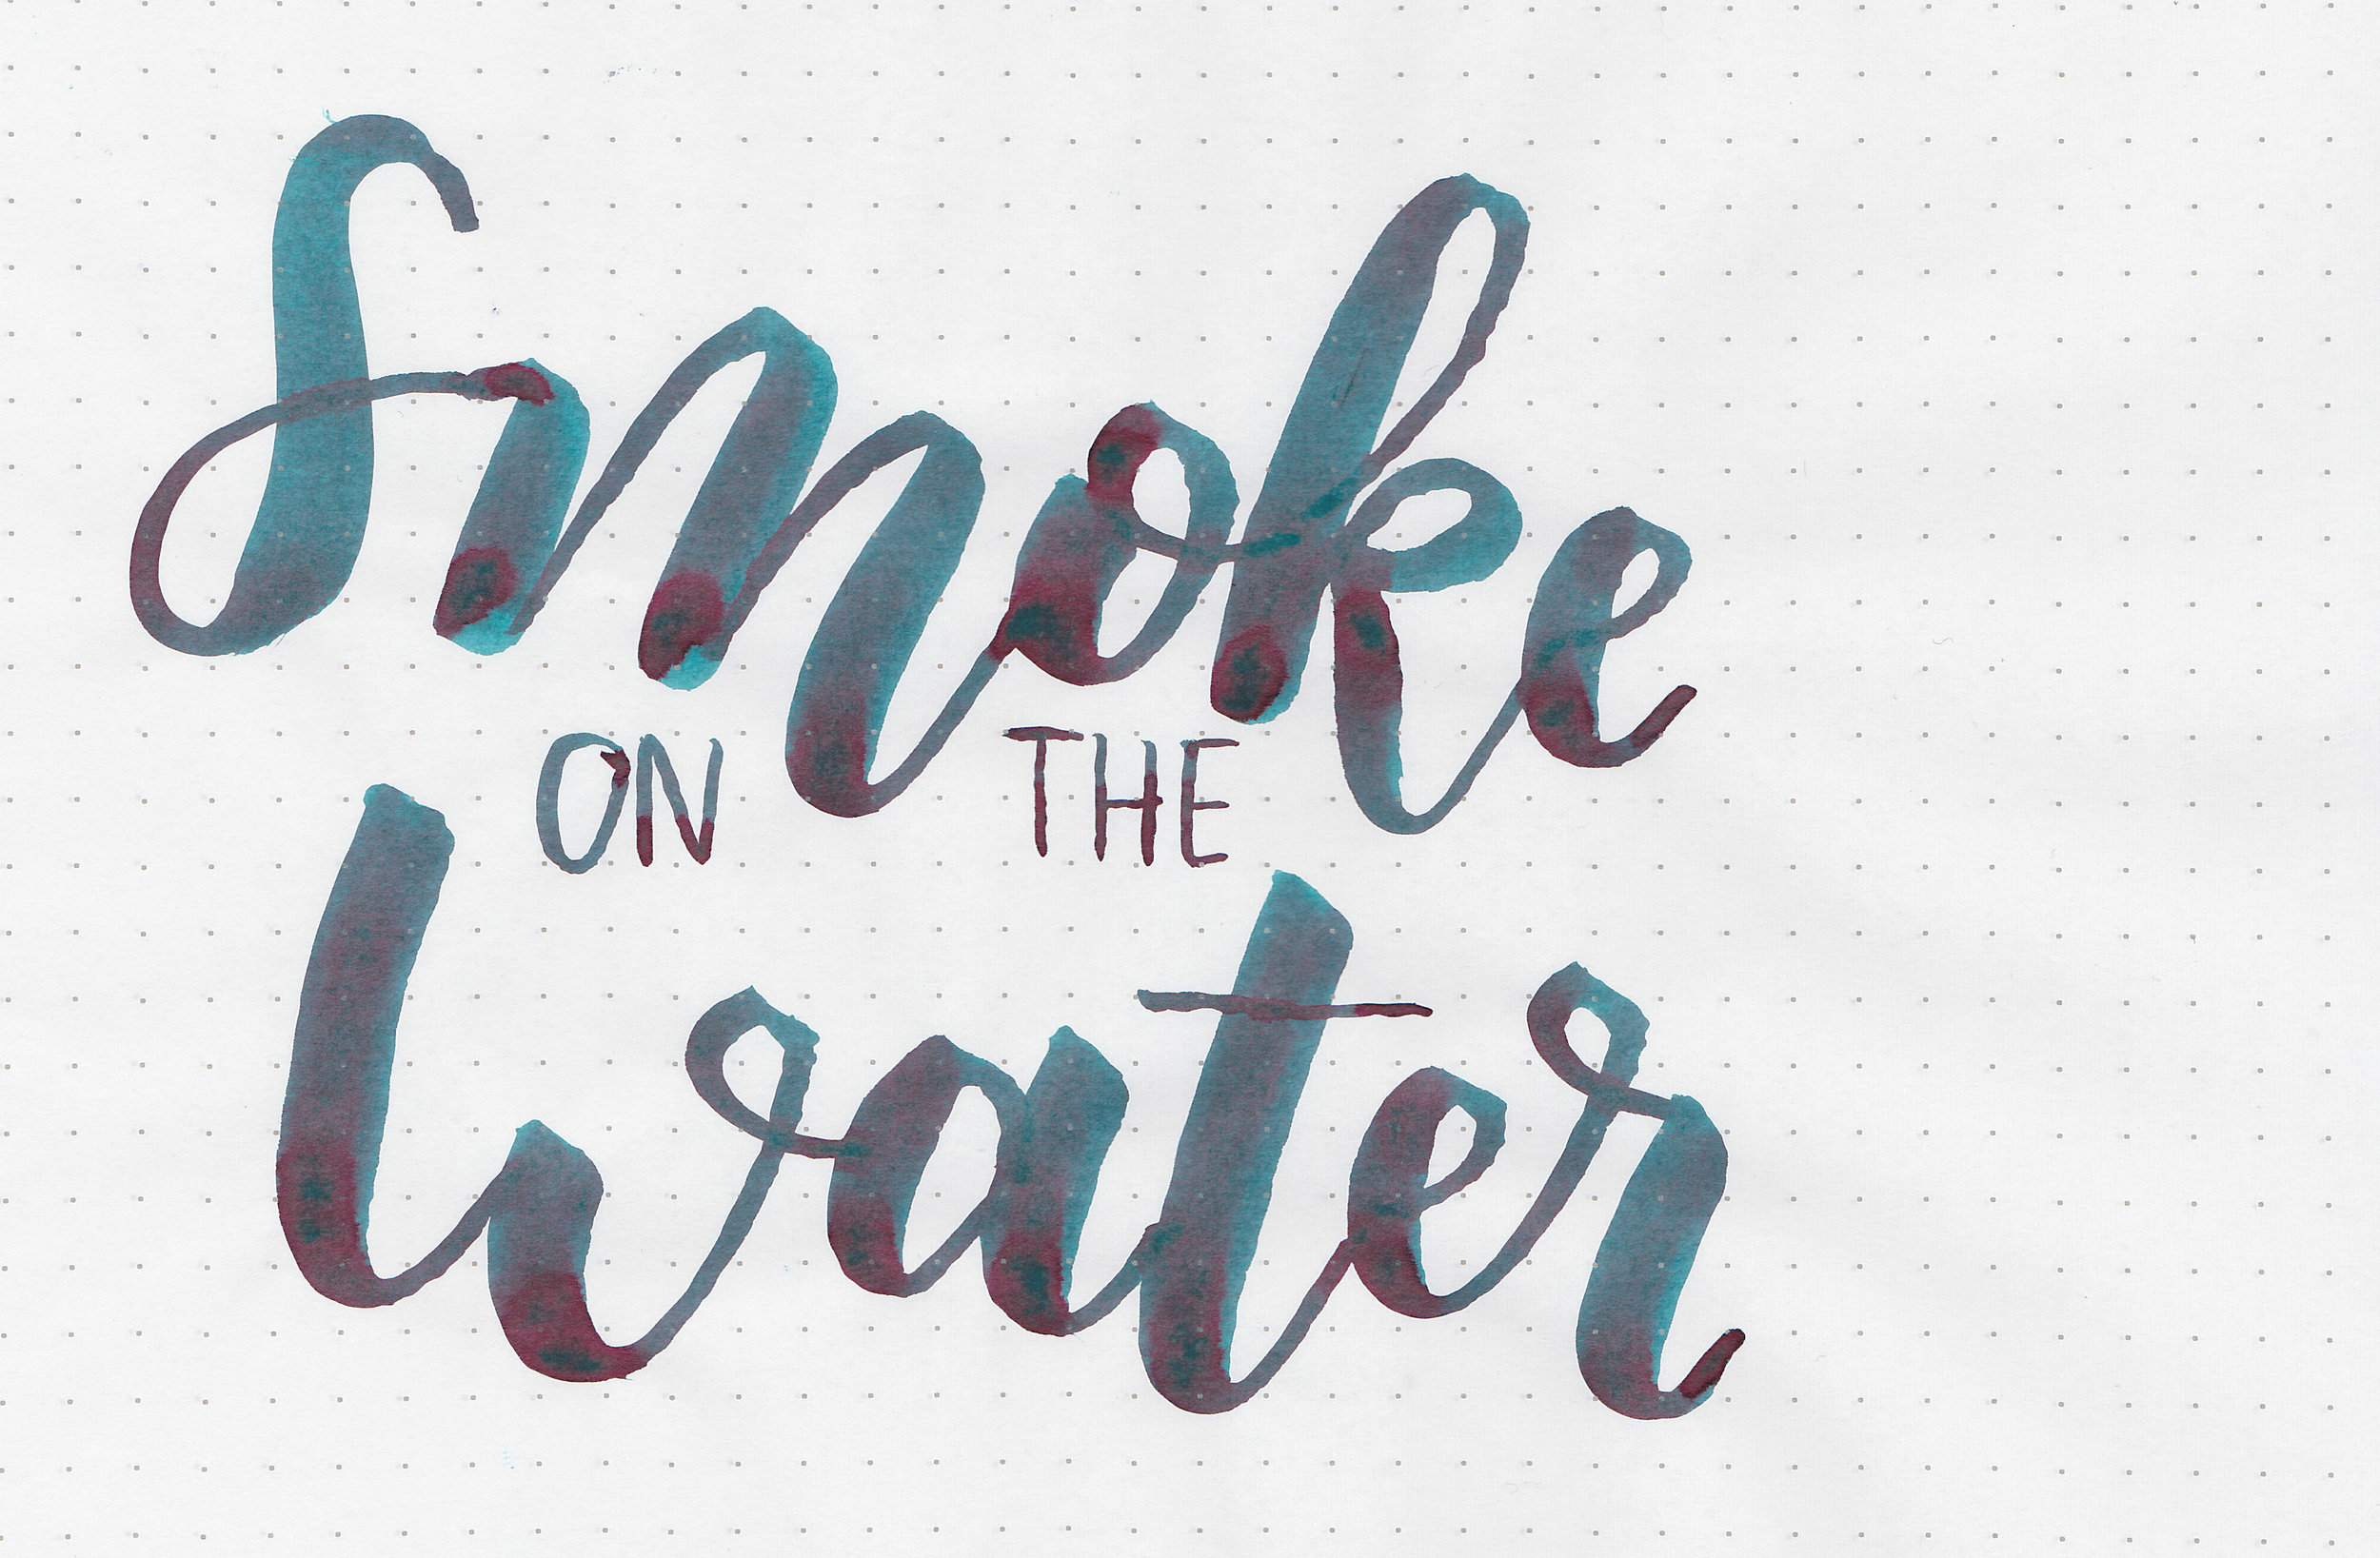 d-smoke-on-the-water-2.jpg